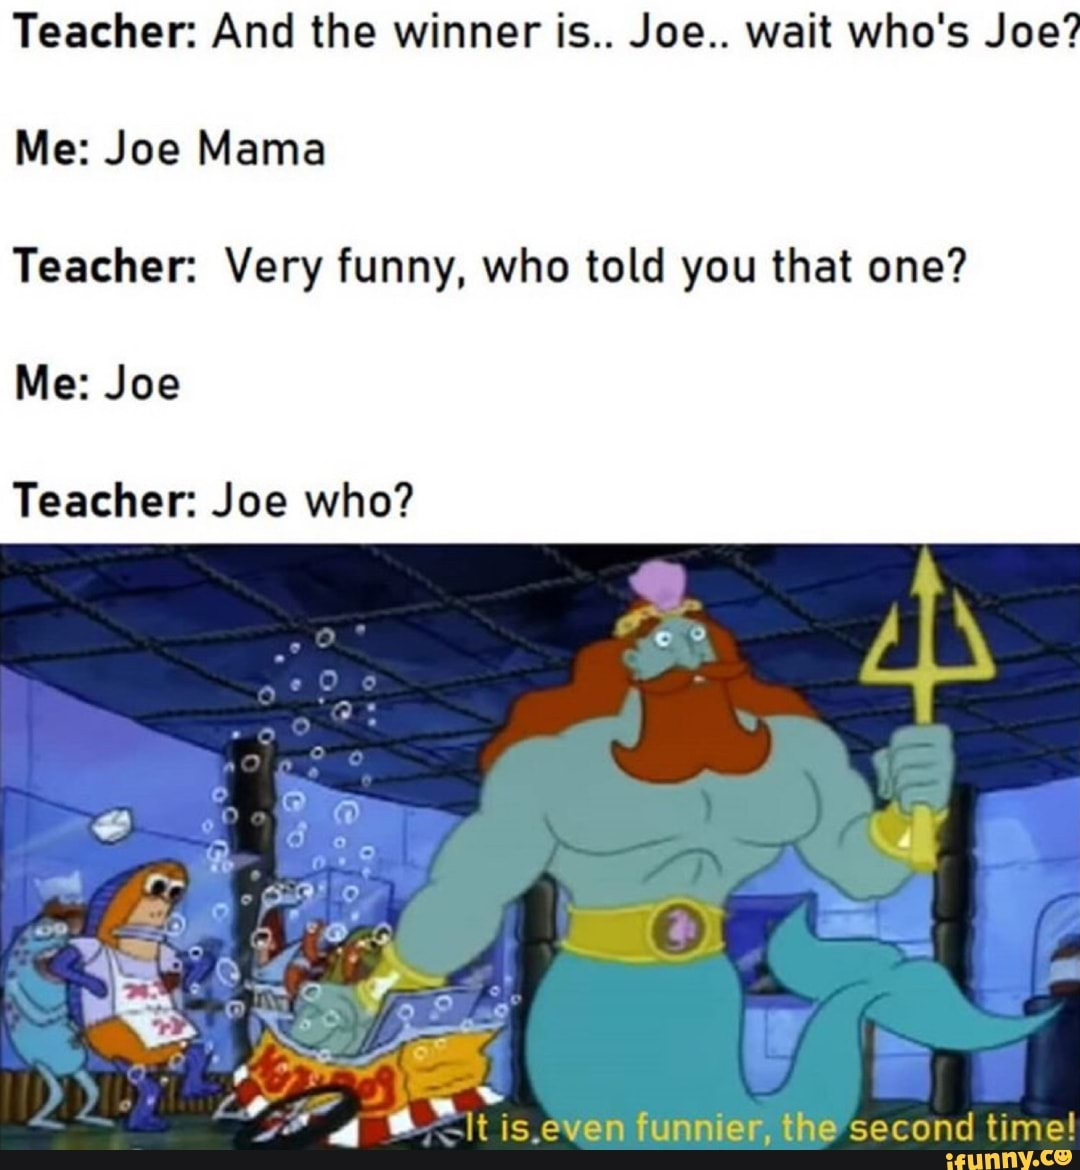 Teacher And The Winner Is Joe Wait Who S Joe Me Joe Mama Teacher Very Funny Who Told You That One Me Joe Teacher Joe Who Ifunny I've heard responses from others, but i am unsure. joe mama teacher